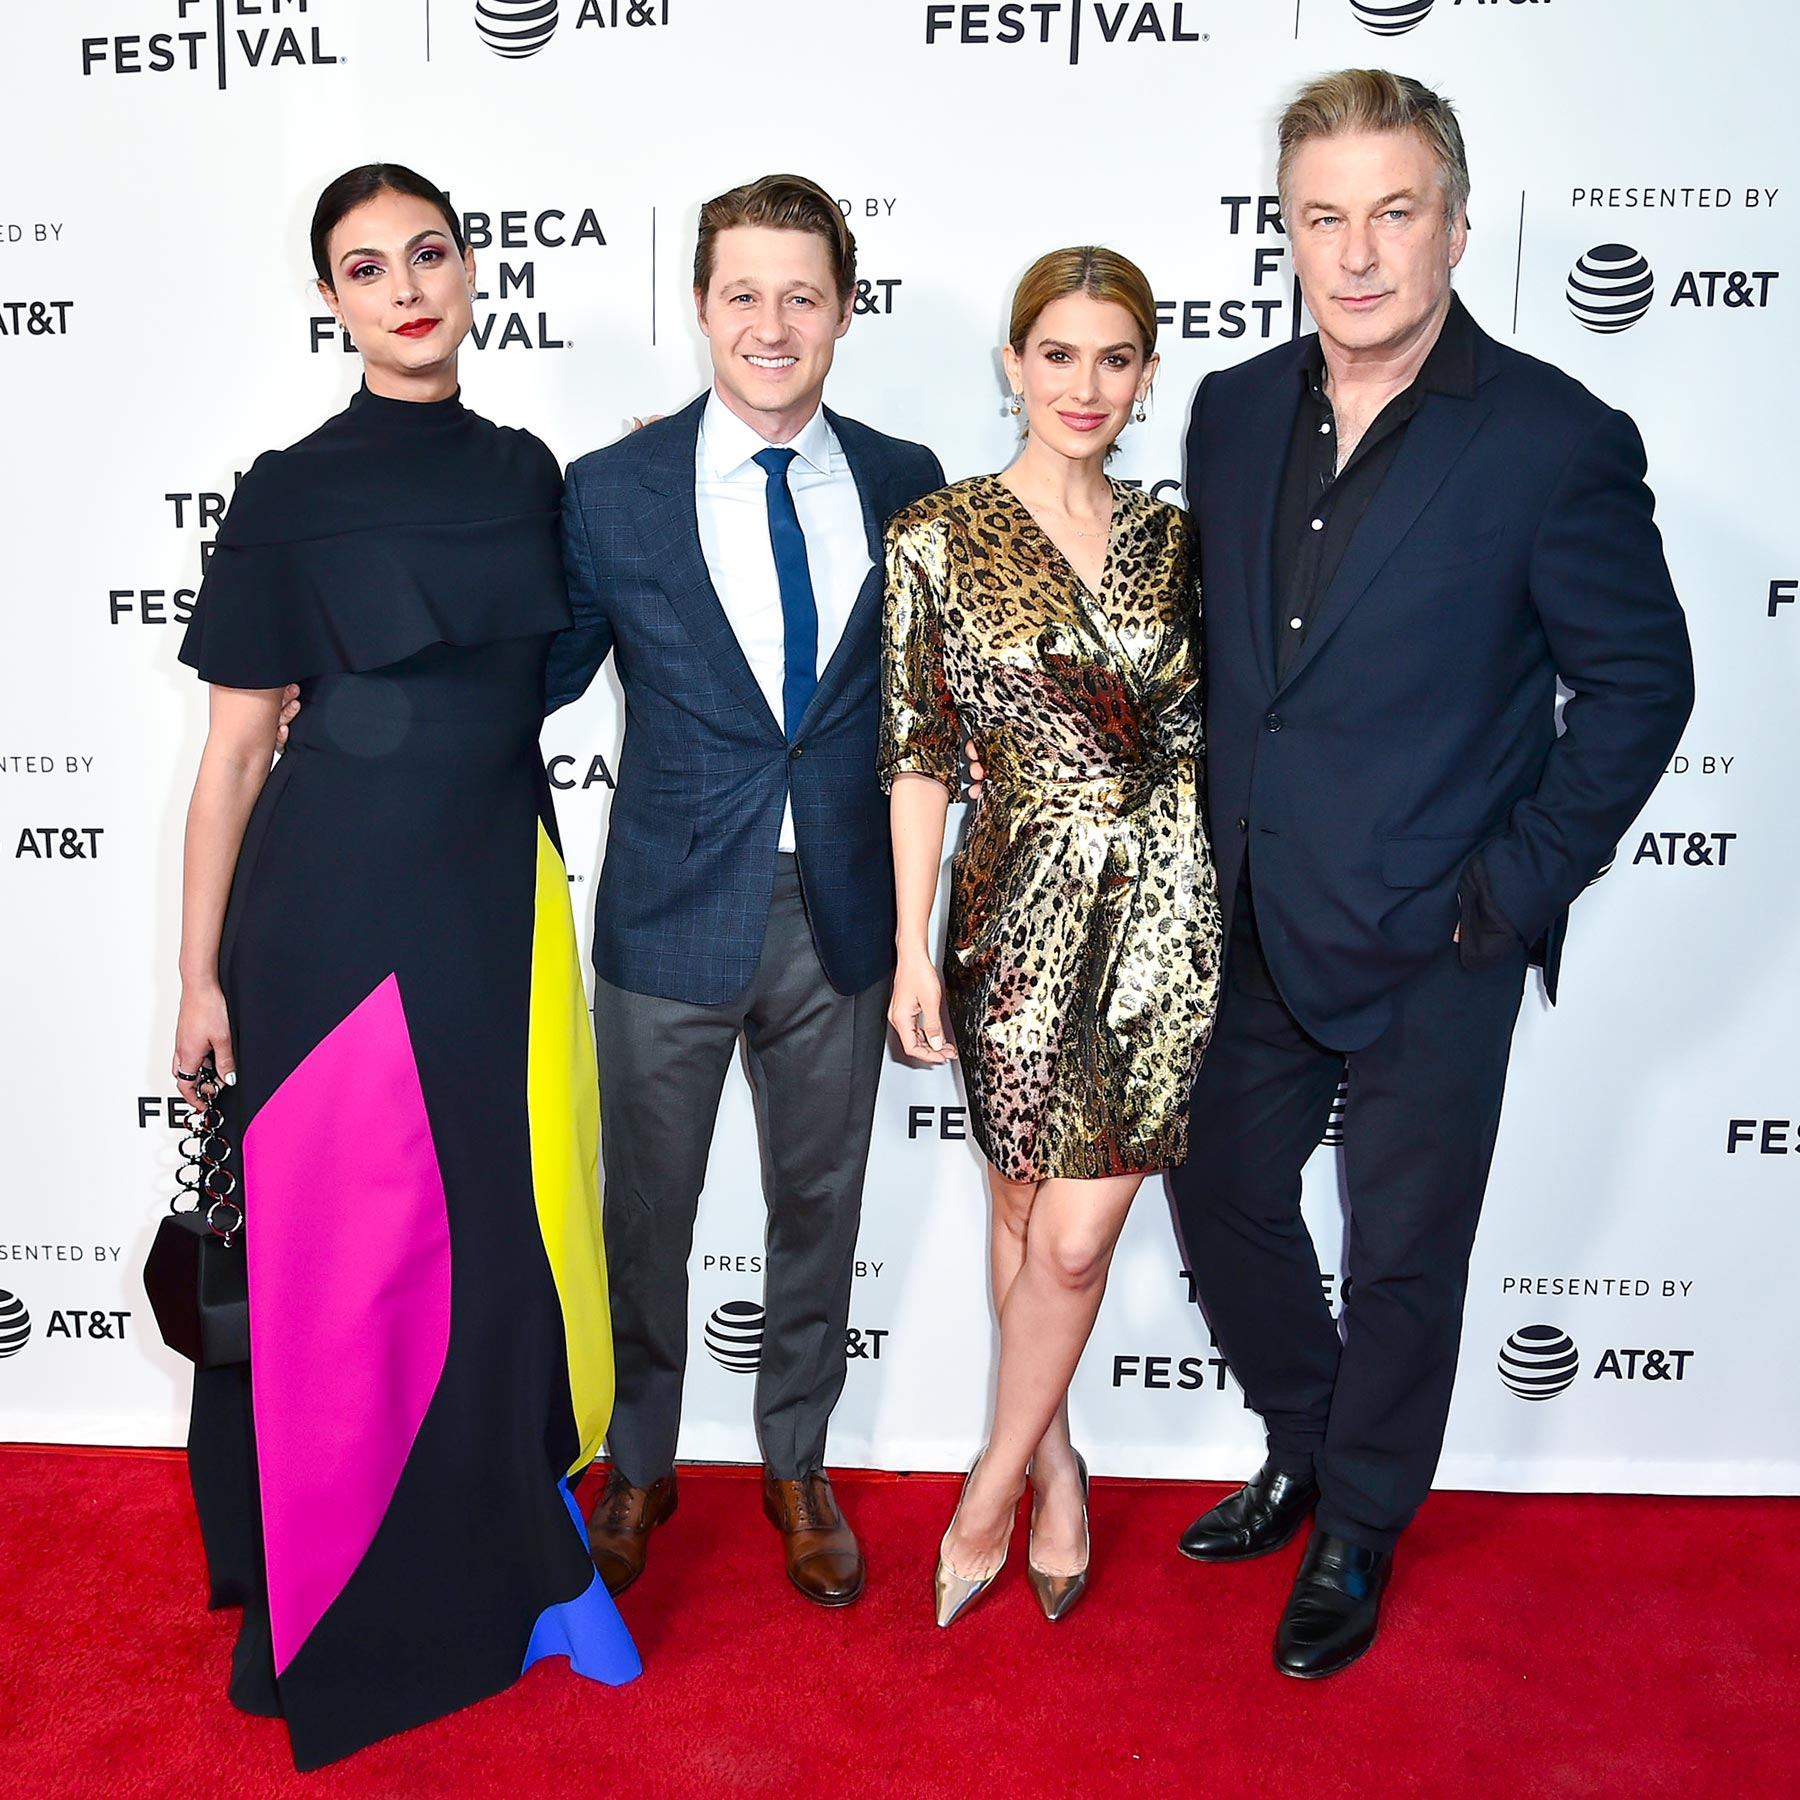 NEW YORK, NY - APRIL 30: Morena Baccarin, Ben Mckenzie, Hilaria Baldwin, and Alec Baldwin attend a screening of Framing John DeLorean during the 2019 Tribeca Film Festival at SVA Theater on April 30, 2019 in New York City. (Photo by Steven Ferdman/Getty Images for Tribeca Film Festival)